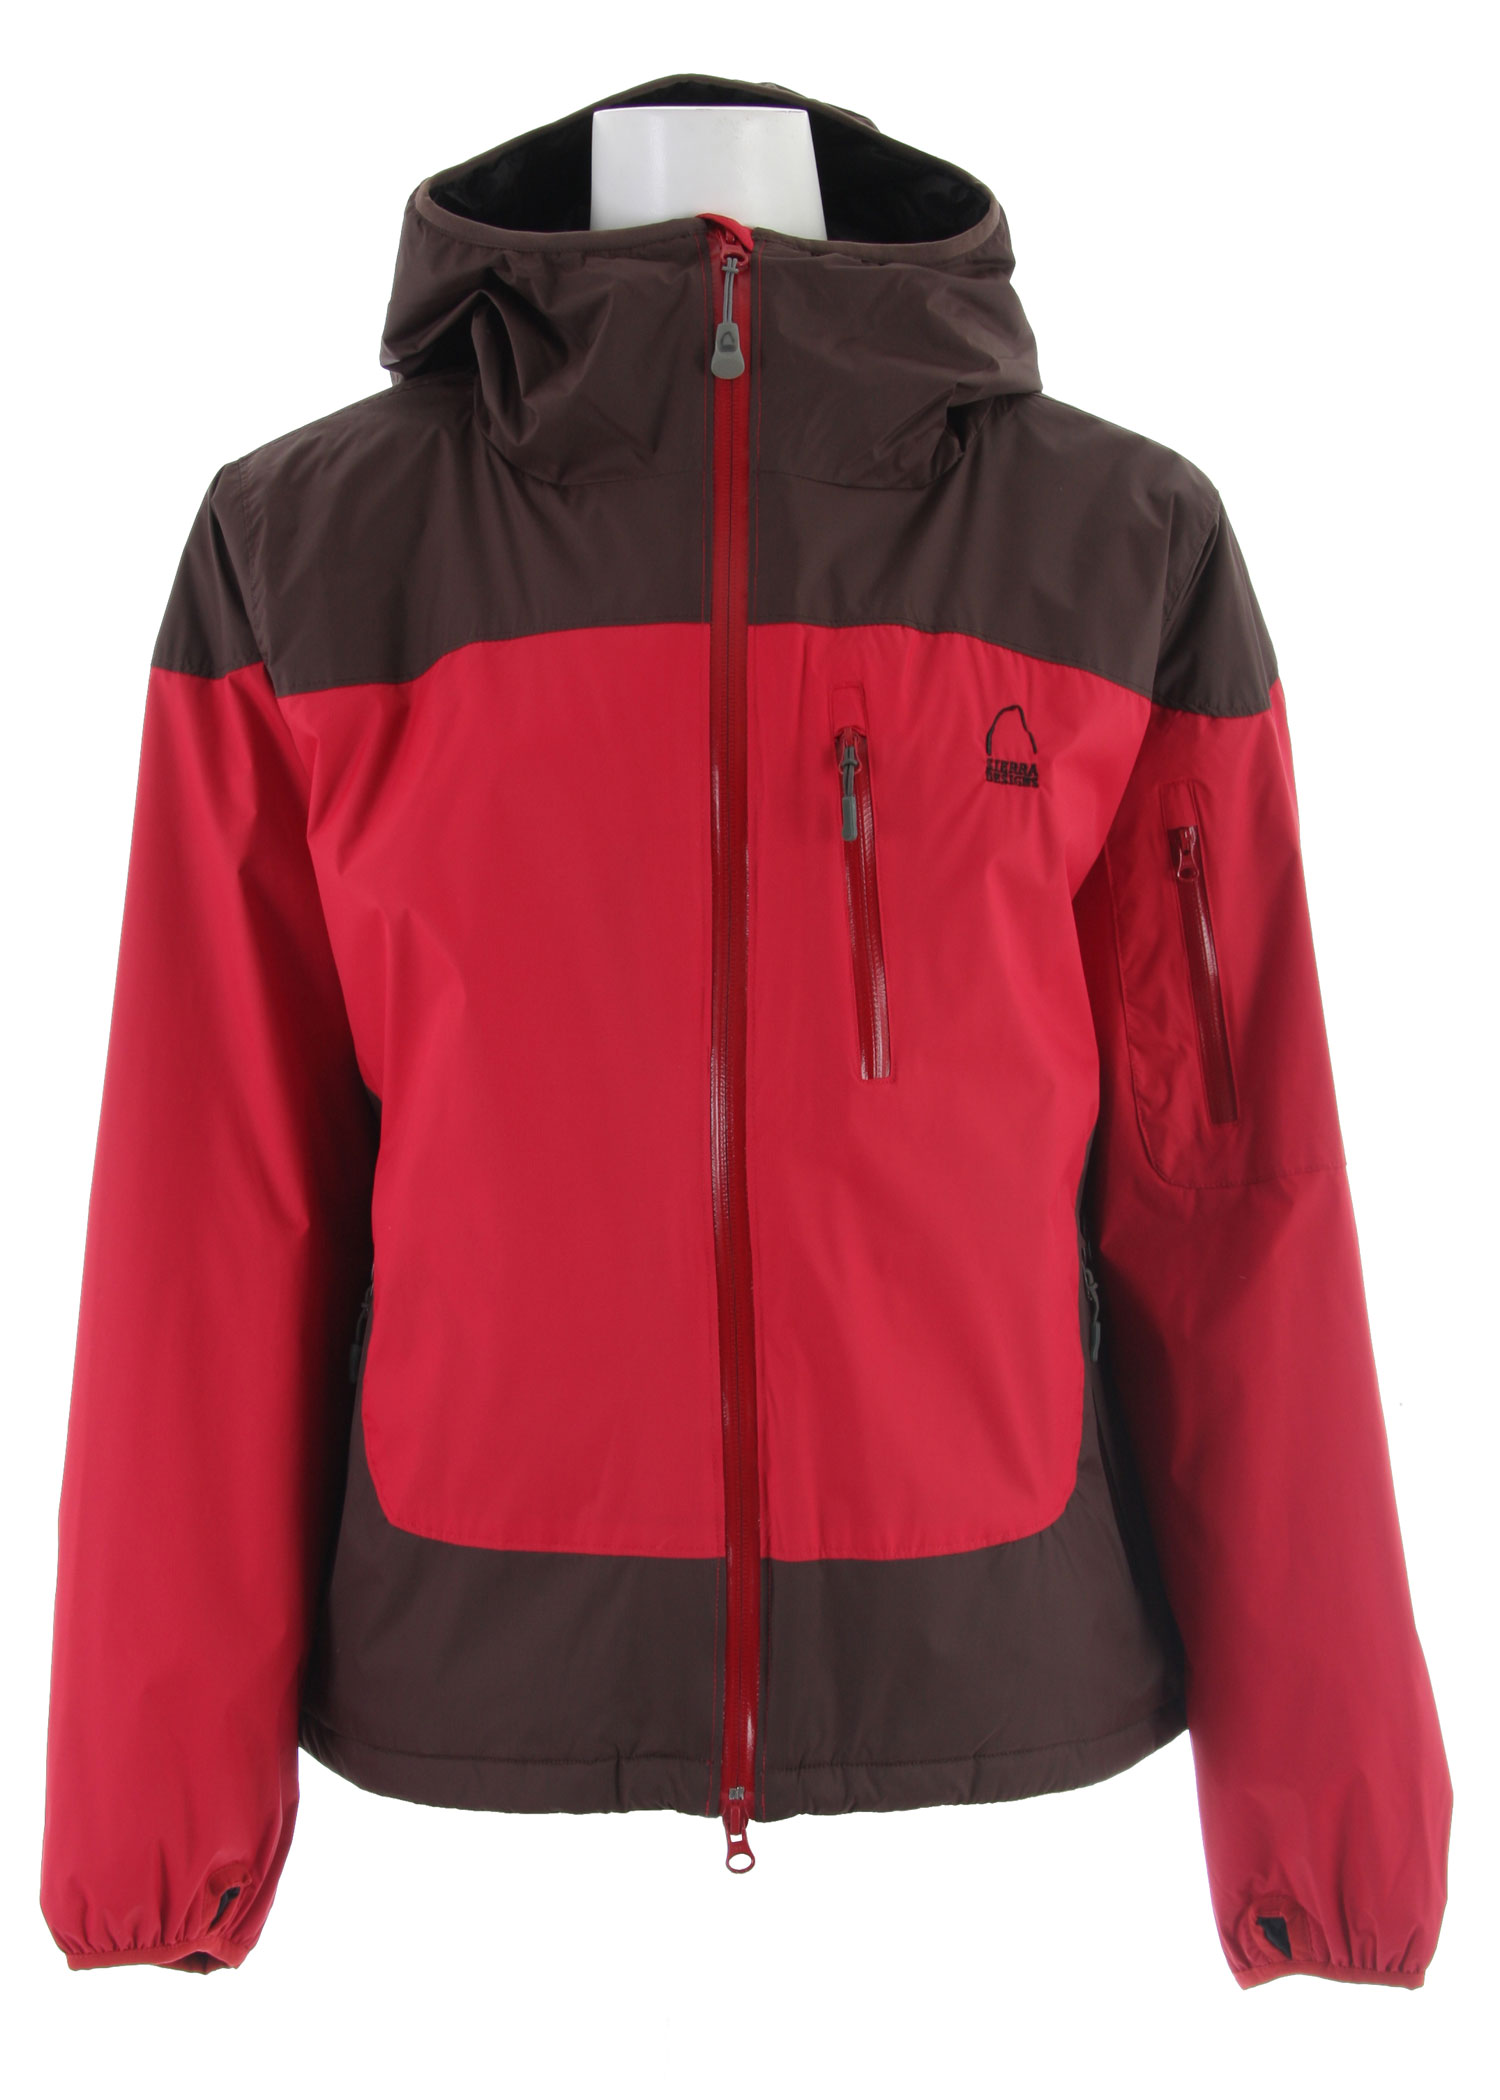 "The durable waterproof shell with a lightly insulated lining. Offering a built-in extra layer, the Sierra Designs Chockstone Insltd Shell Jacket provides an extra layer of warmth while remaining breathable to keep from over heating.Key Features of the Sierra Designs Chockstone Insltd Shell Jacket: 10,000mm Waterproof 6,000g Breathability 100g Primaloft Eco in Body & 60g Primaloft Eco in Sleeves 100% Polyester Taffeta Lining 1 Interior Zippered Pocket & 2 Interior Dump Pockets Interior Tricot Chin Guard Center Front Storm Flap Exposed Waterproof Zippers Condor Construction Helmet Compatible, Adjustable, Elasticized Hood Adjustable Hem Elasticized Cuff with Thumbhole Center Back Length: 27 1/2"" Weight: 23 oz Tropozone 2L 100% Nylon Ripstop,55 g/m2, 40D, solvent free lamination - $96.75"